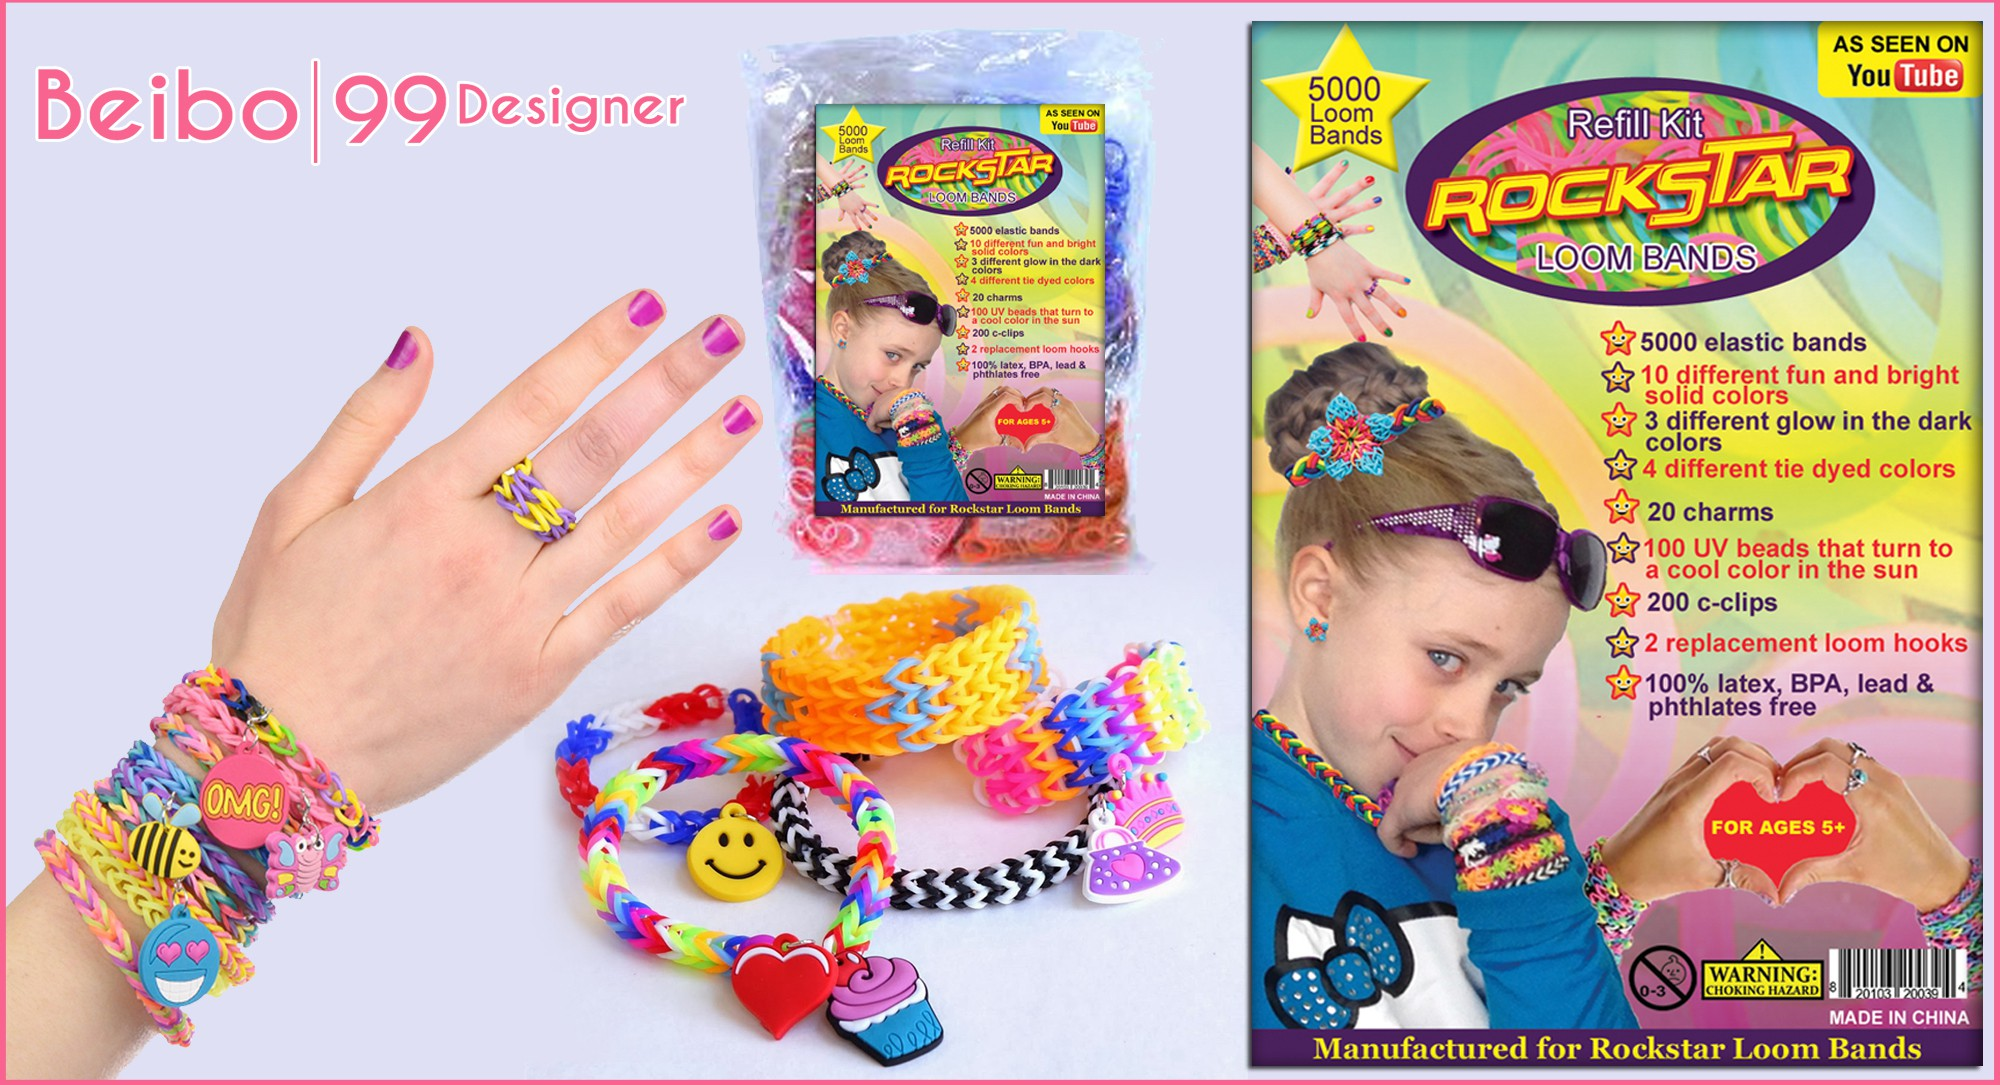 Create product label for Rockstar Loom Bands-Rubber band refill kit